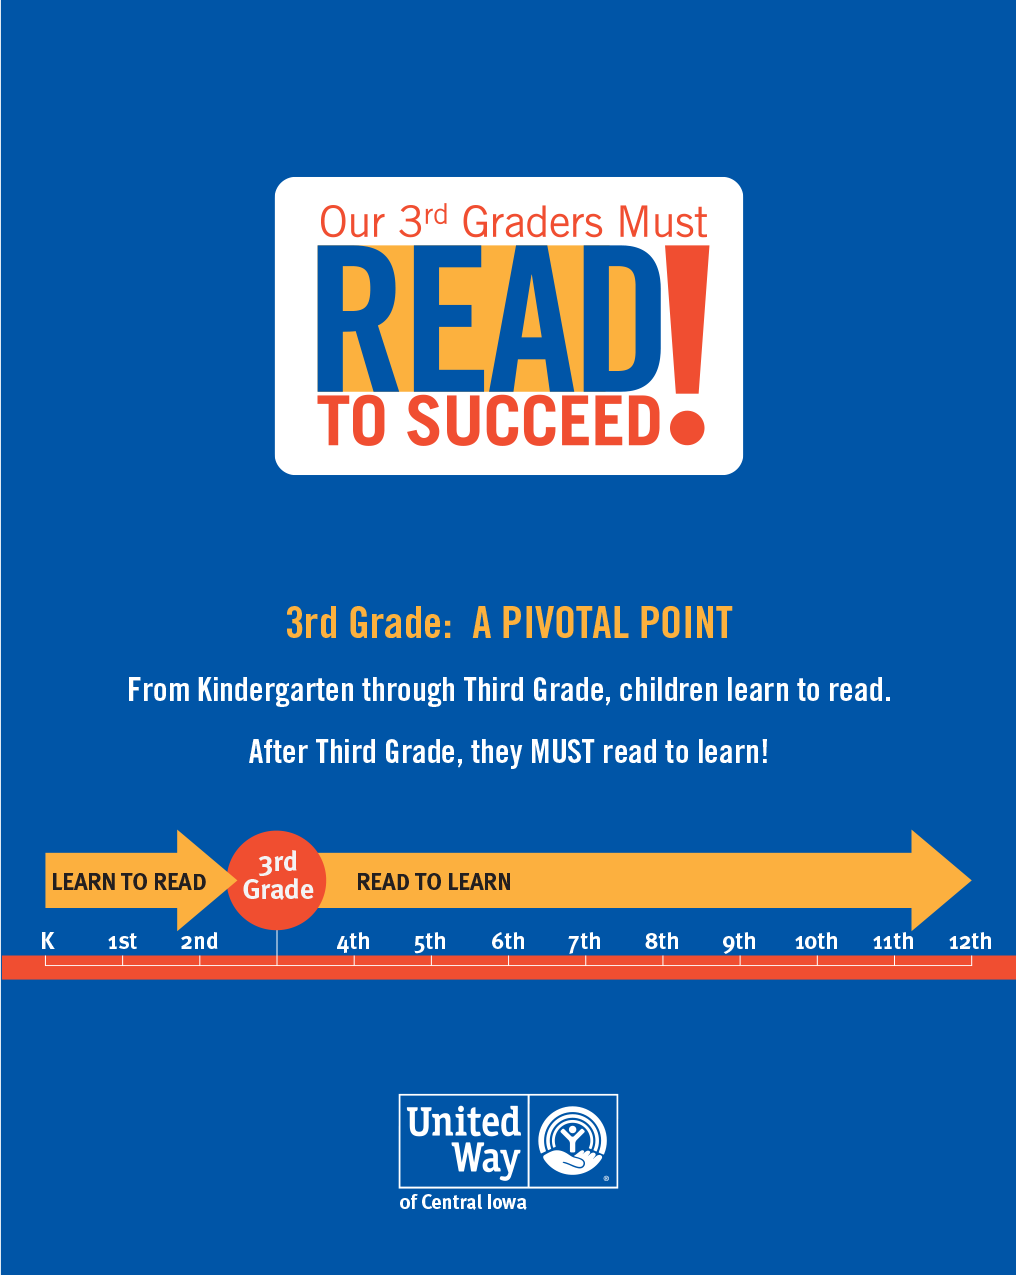 3rd Grade Reading Infographic 030917 cover.png